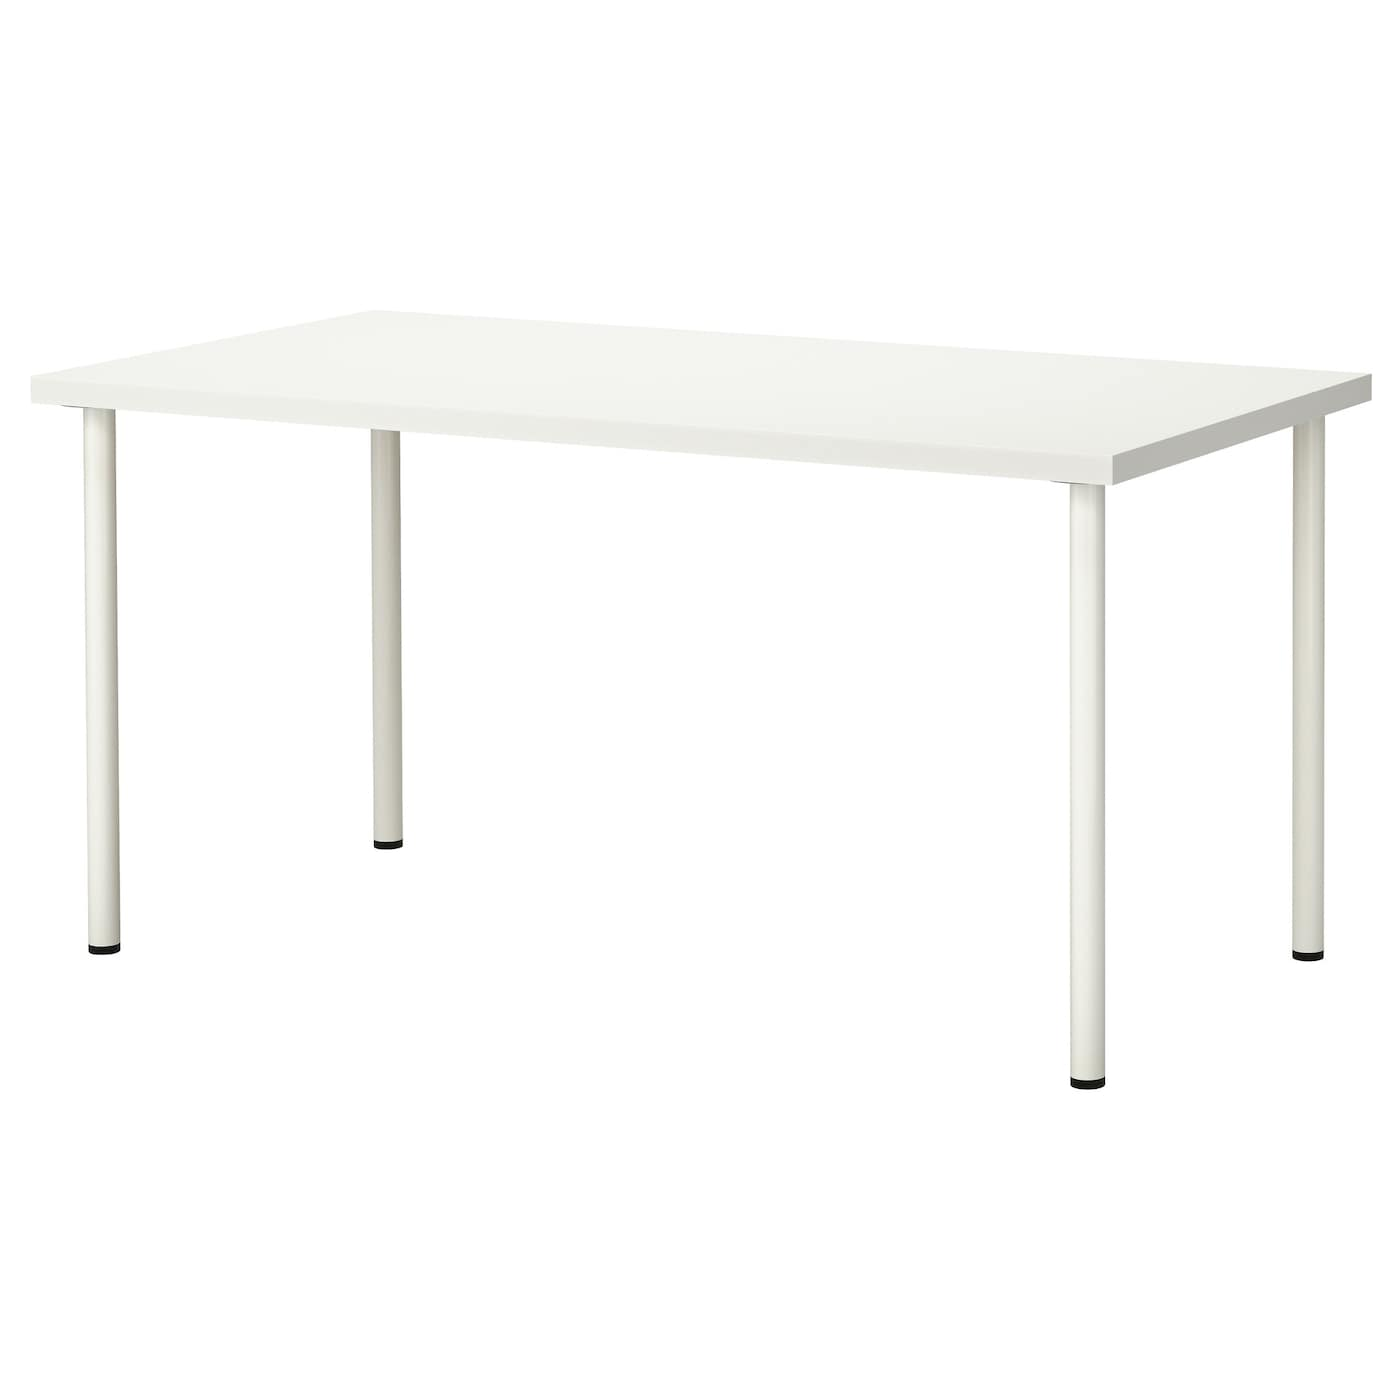 adils linnmon table white 150x75 cm ikea. Black Bedroom Furniture Sets. Home Design Ideas